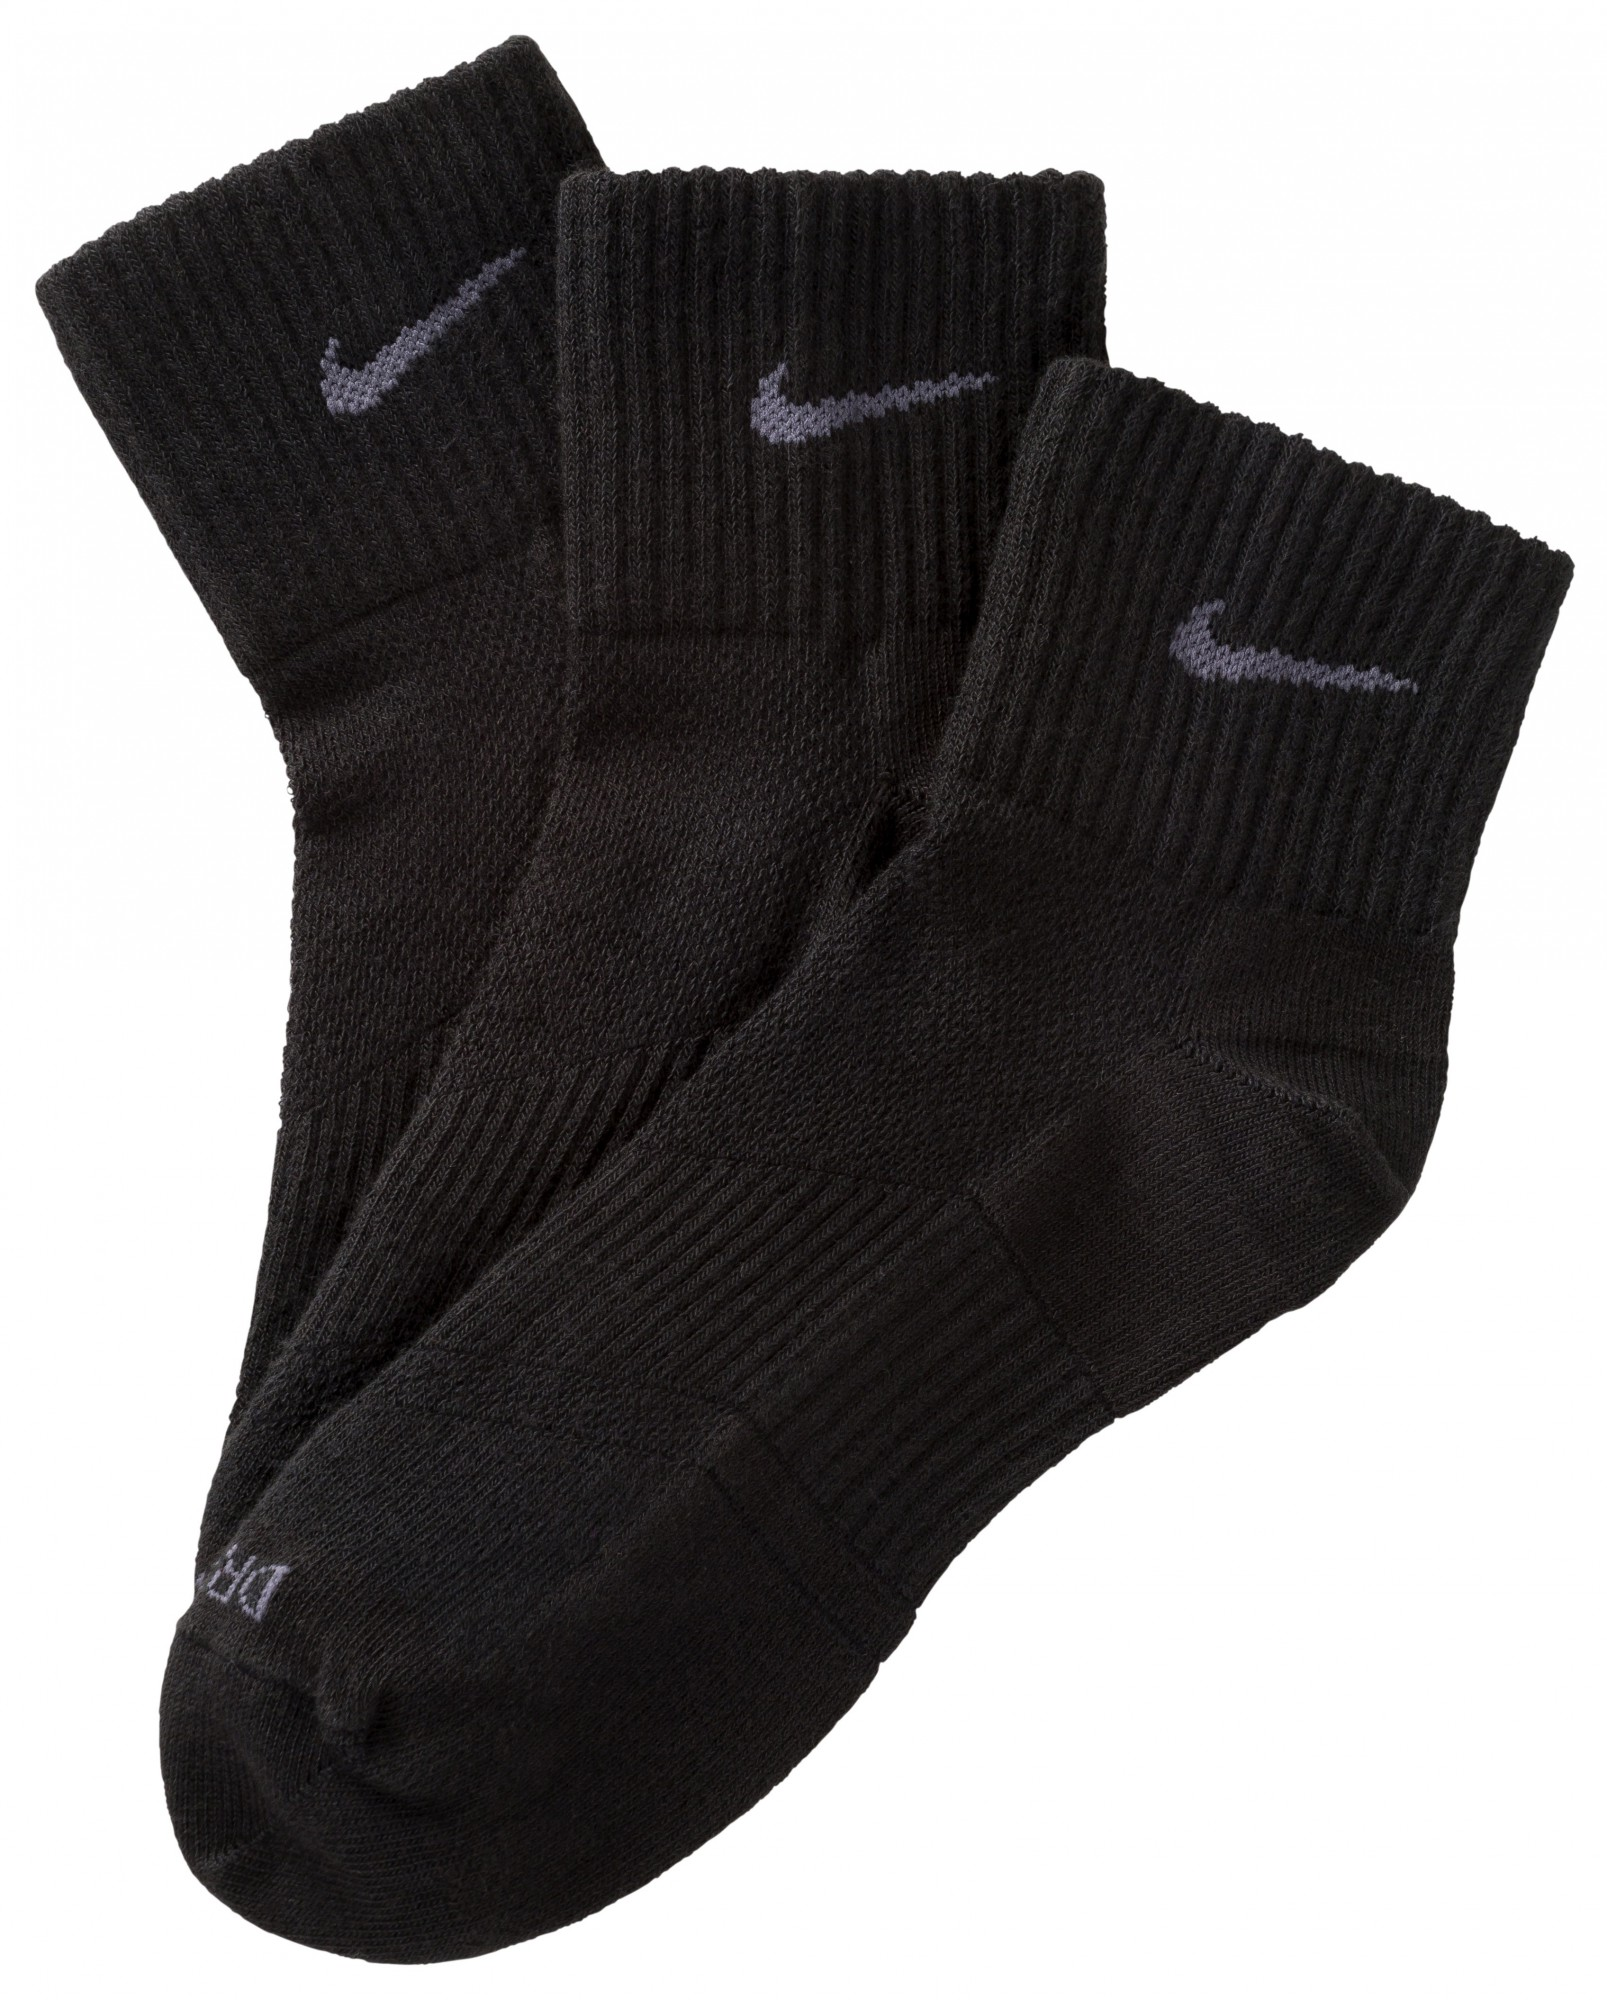 nike socken 3er pack str mpfe sportsocken schwarz oder. Black Bedroom Furniture Sets. Home Design Ideas